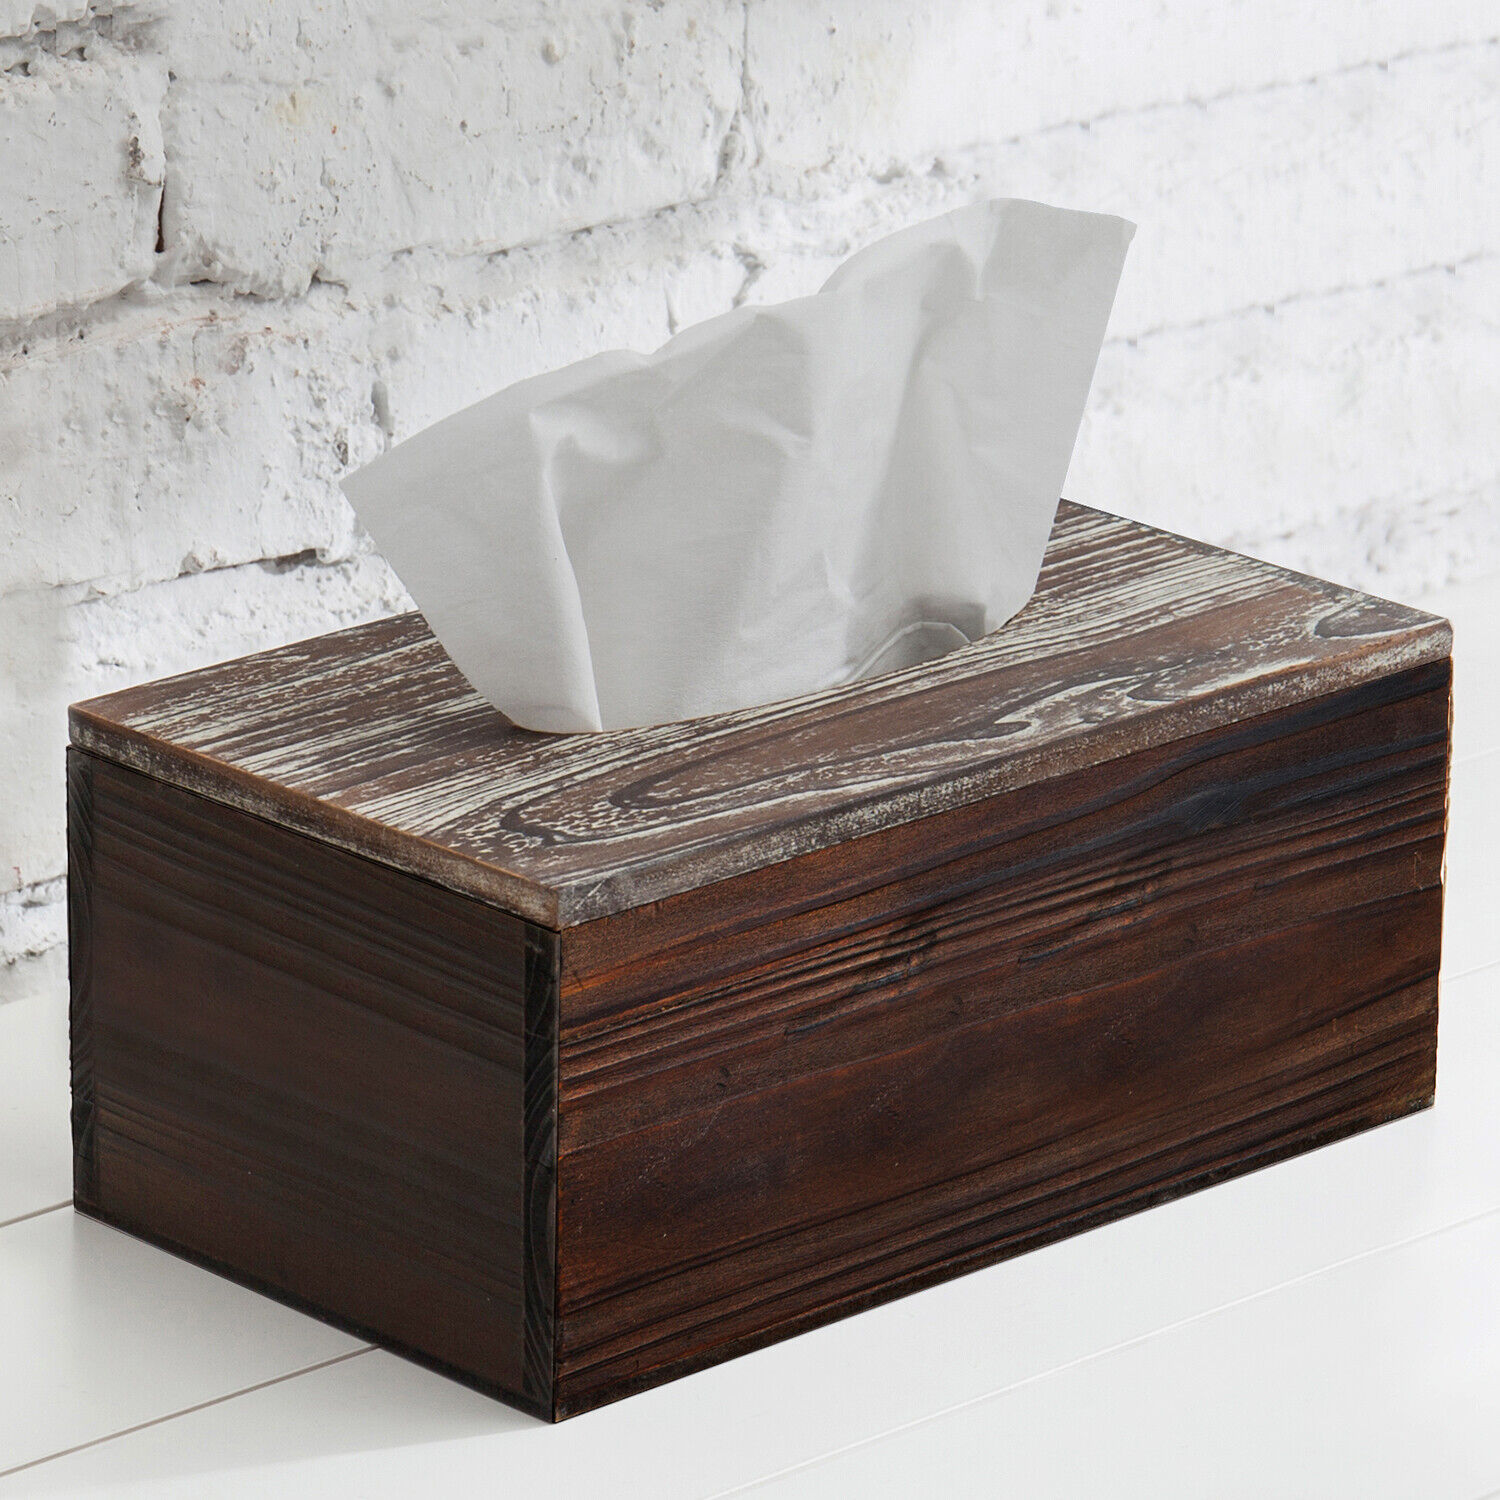 MyGift Rustic Distressed Textured Torched Wood Rectangle Tissue Box Holder Cover